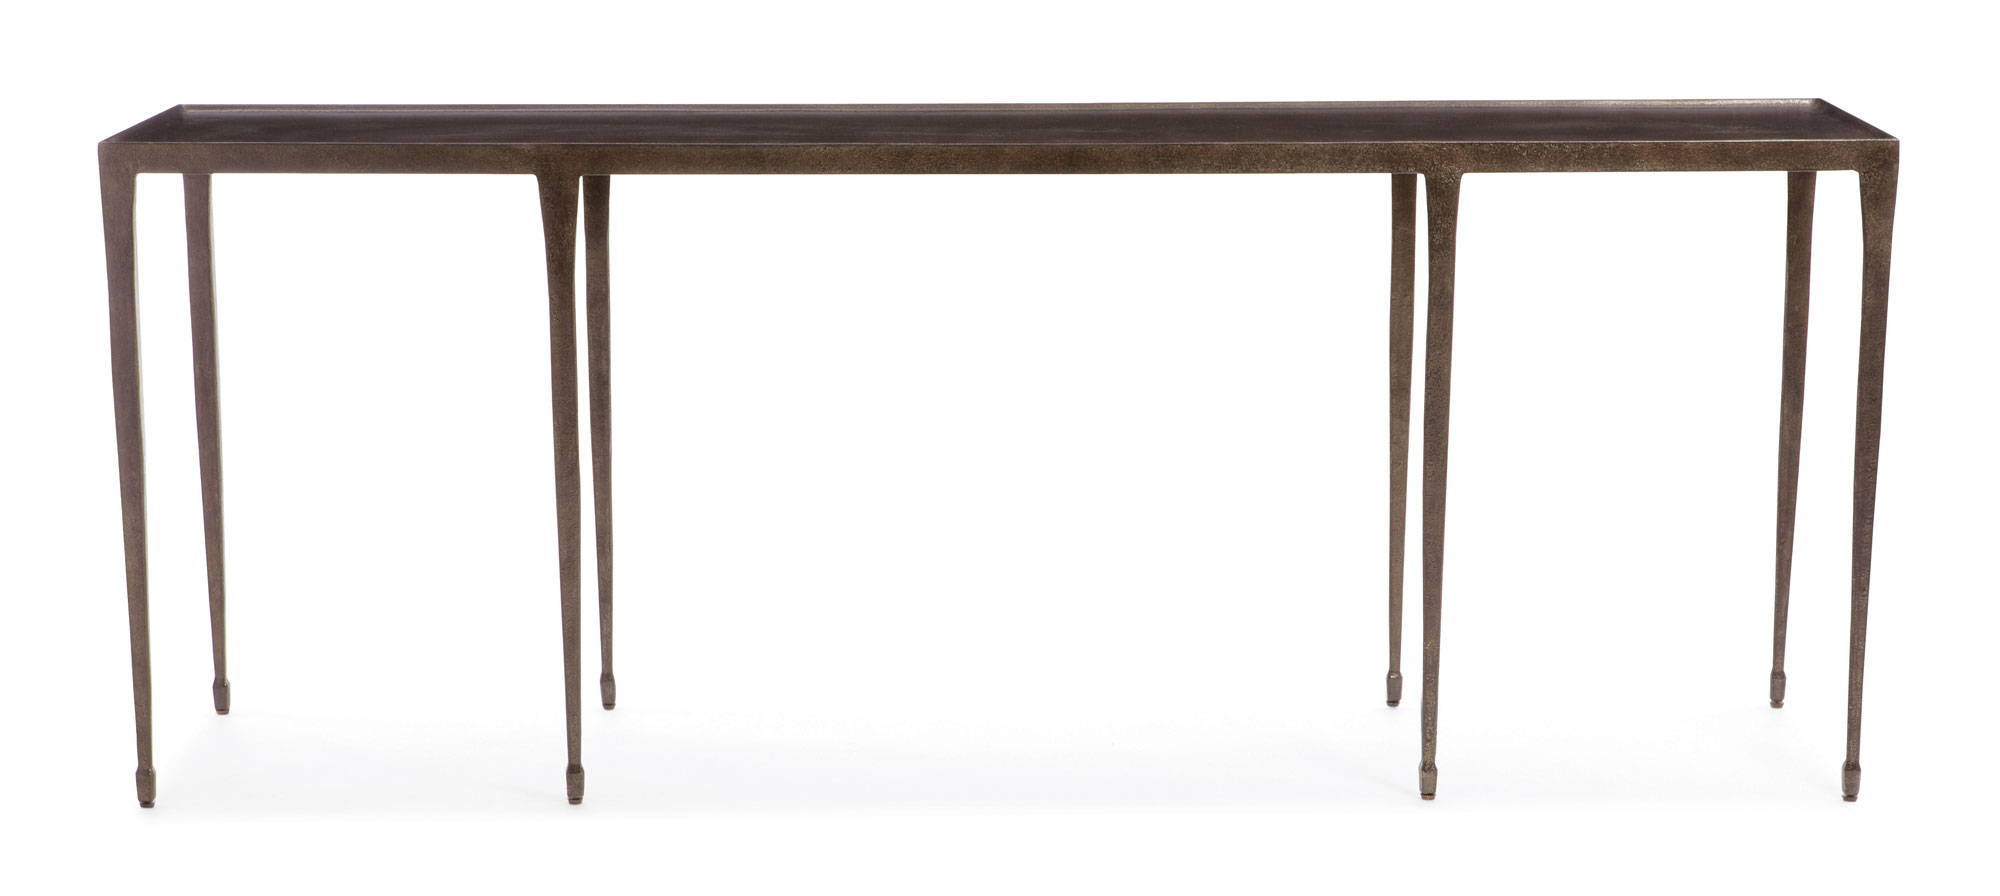 Bernhardt Console Table Halden 84 Inch Hammered Iron Distressed Throughout Silviano 84 Inch Console Tables (Gallery 2 of 30)